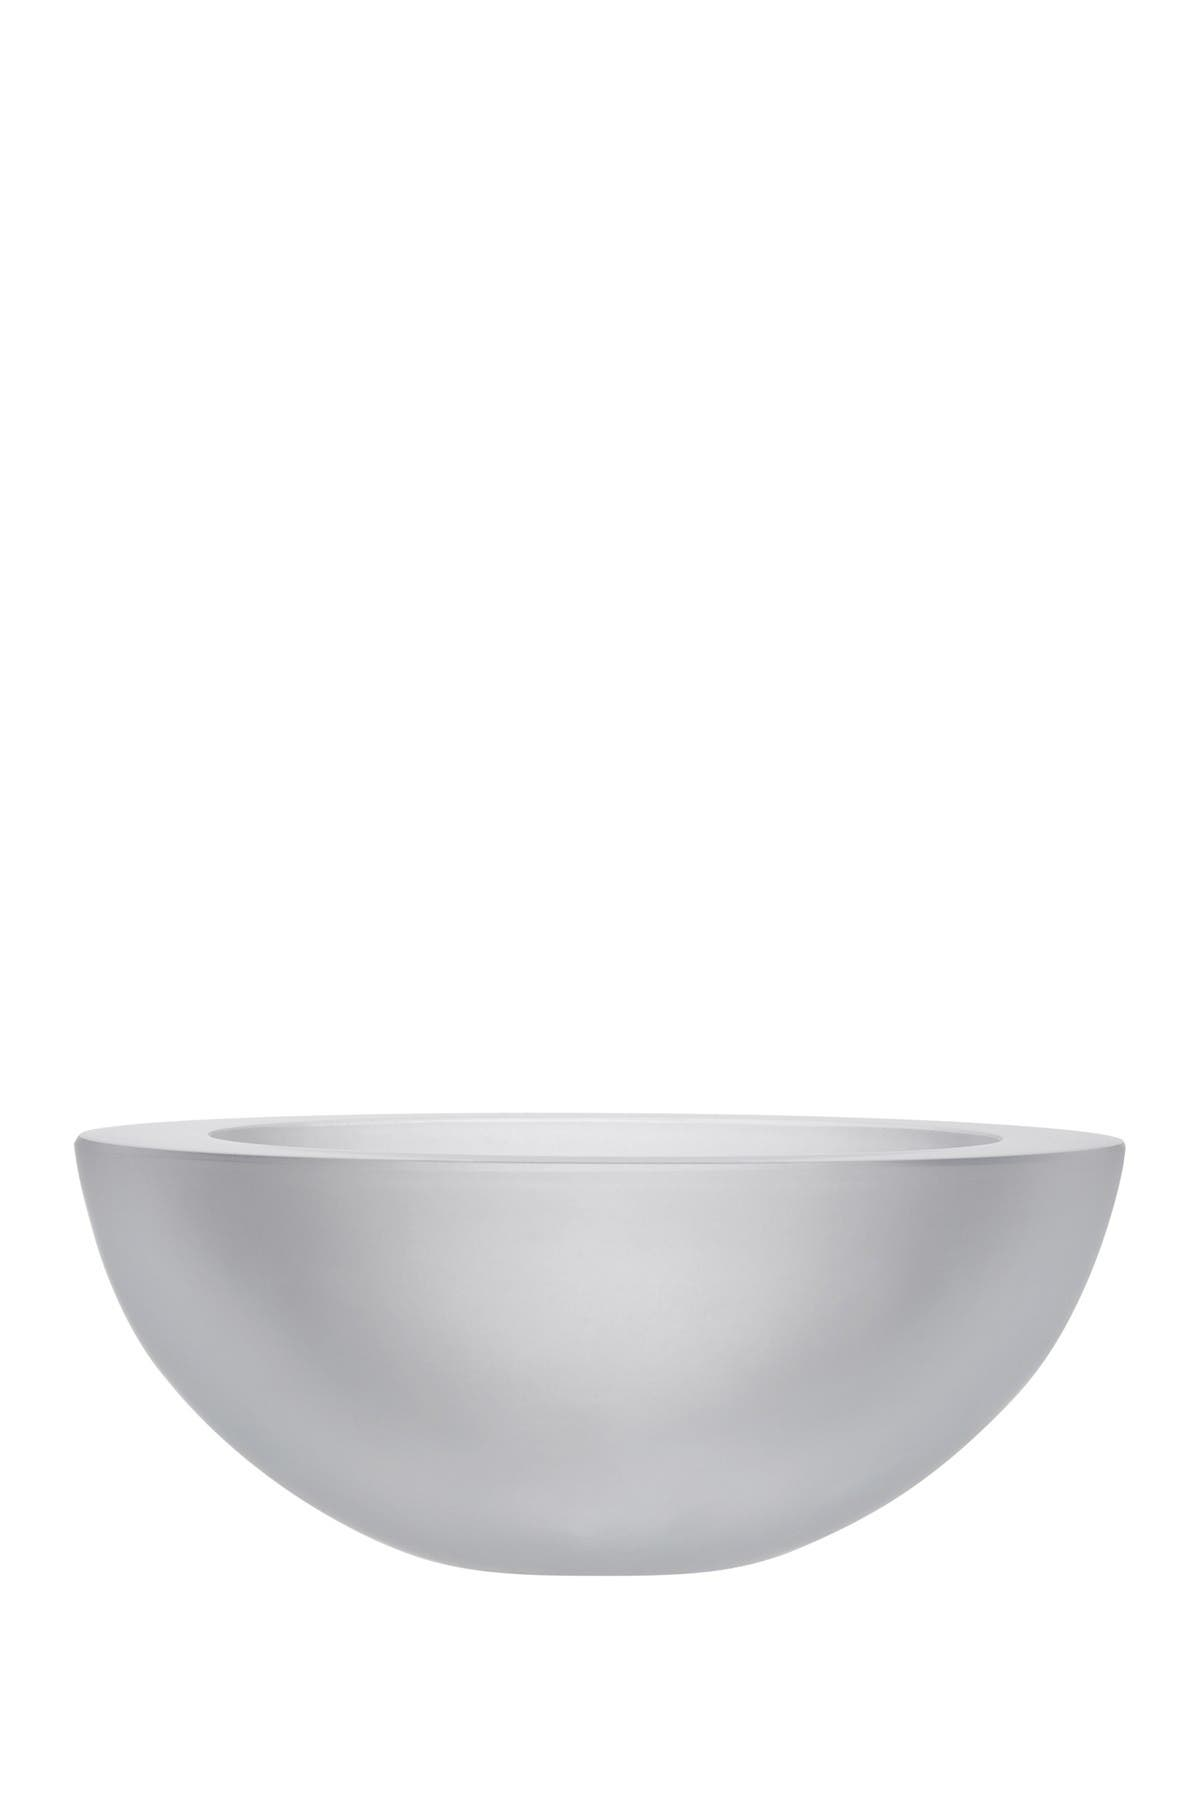 Image of Nude Glass Essence Bowl - Large - Sandblasted